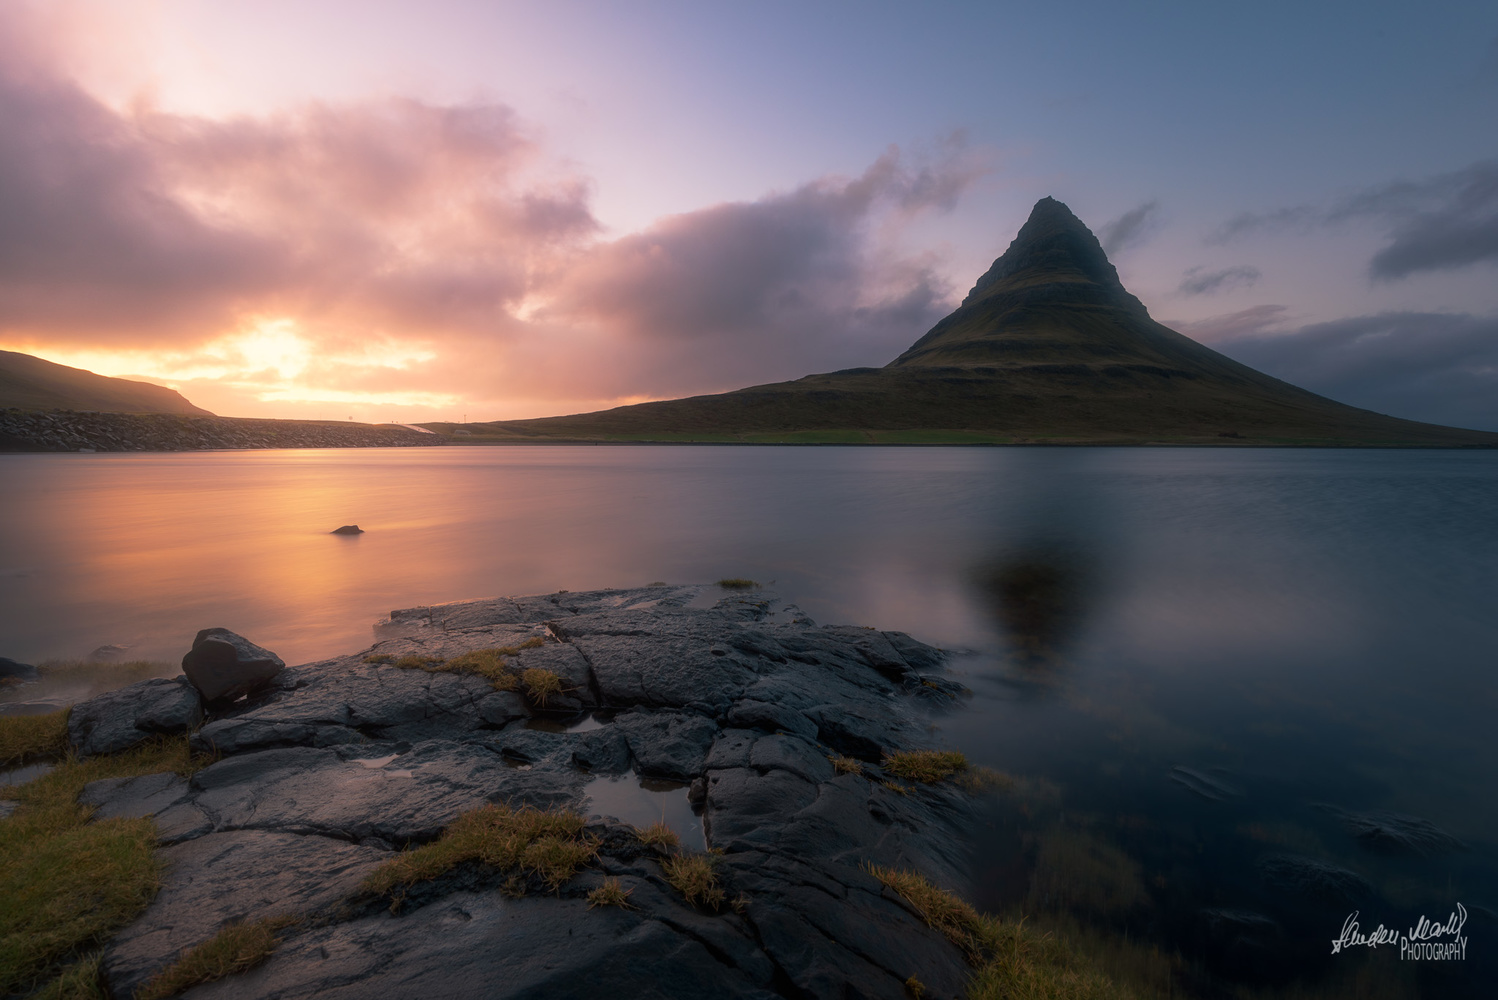 The Witch Hat Mountain by SANDEEP MATHUR